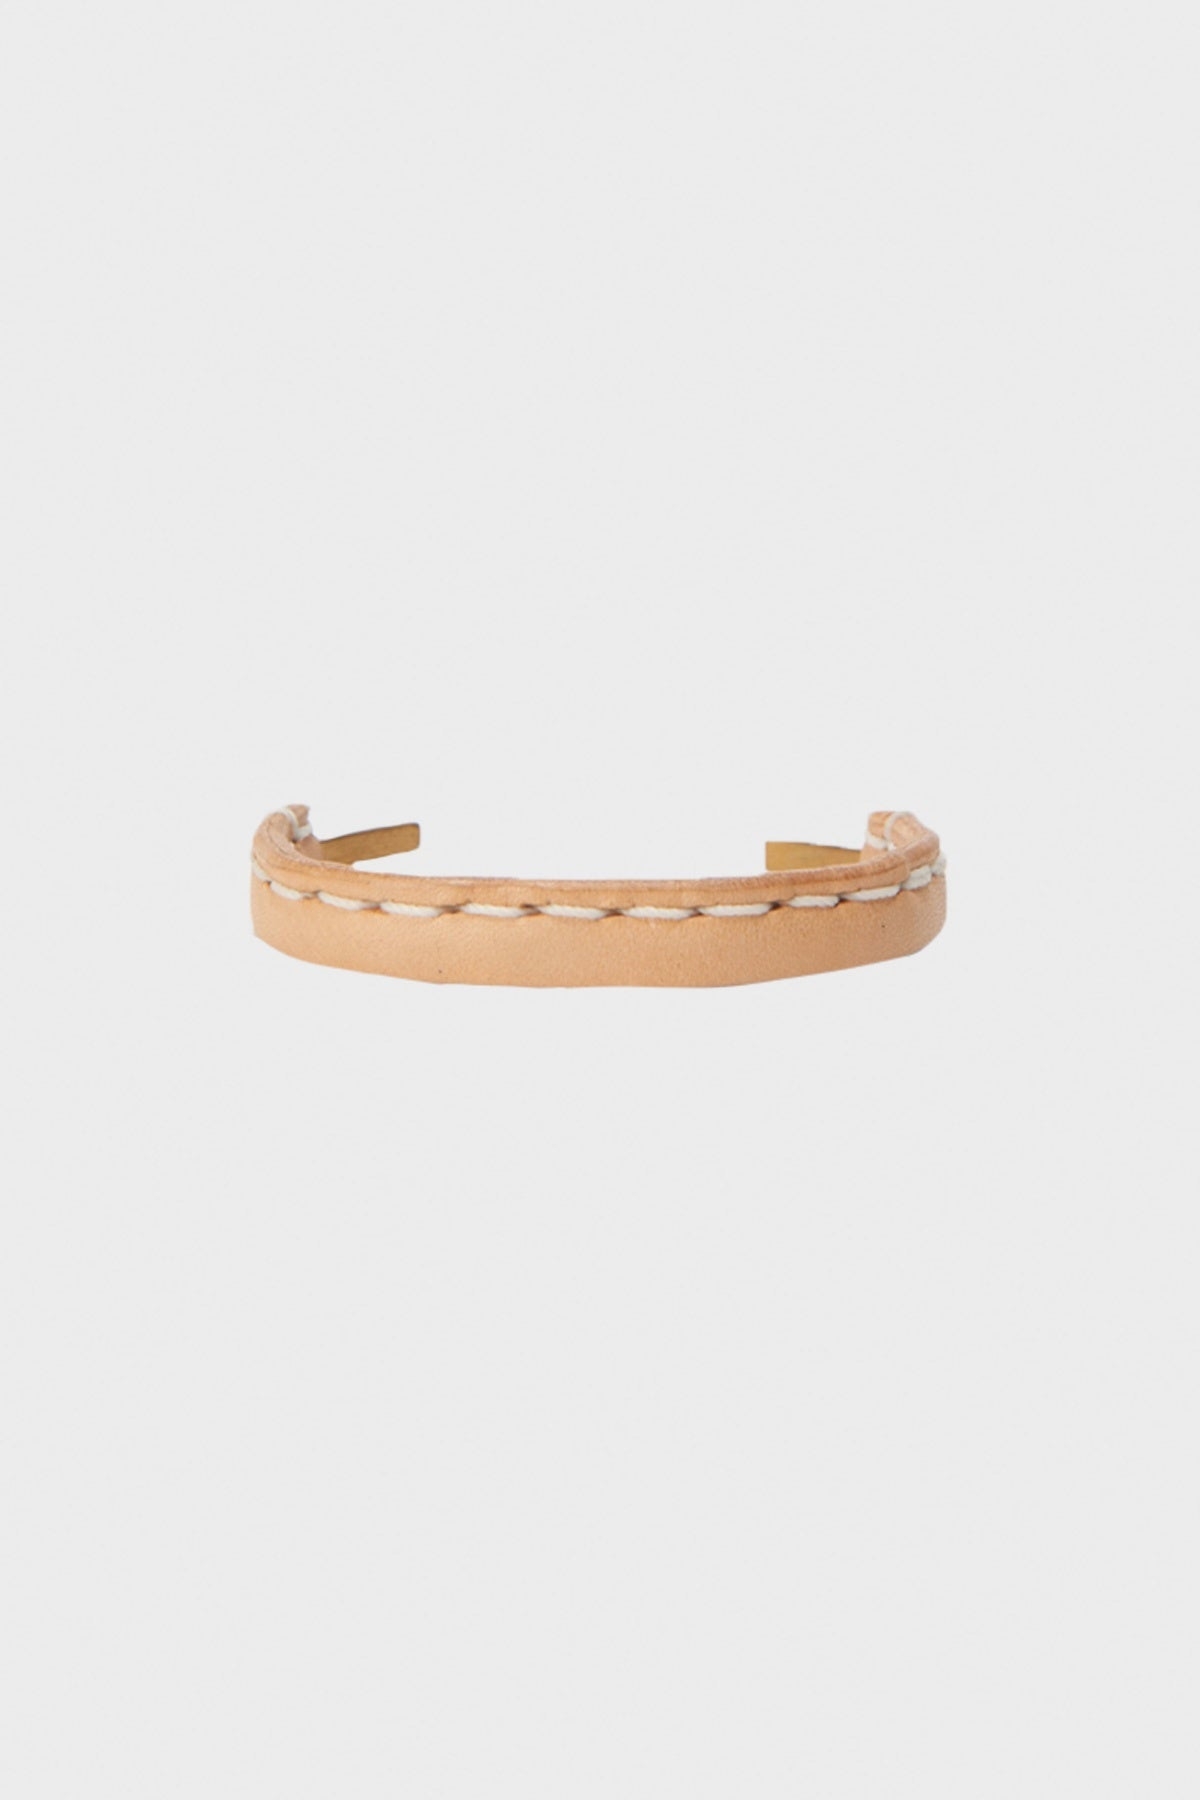 hender scheme Not Lying Jewelry Bangle - Brass/Natural